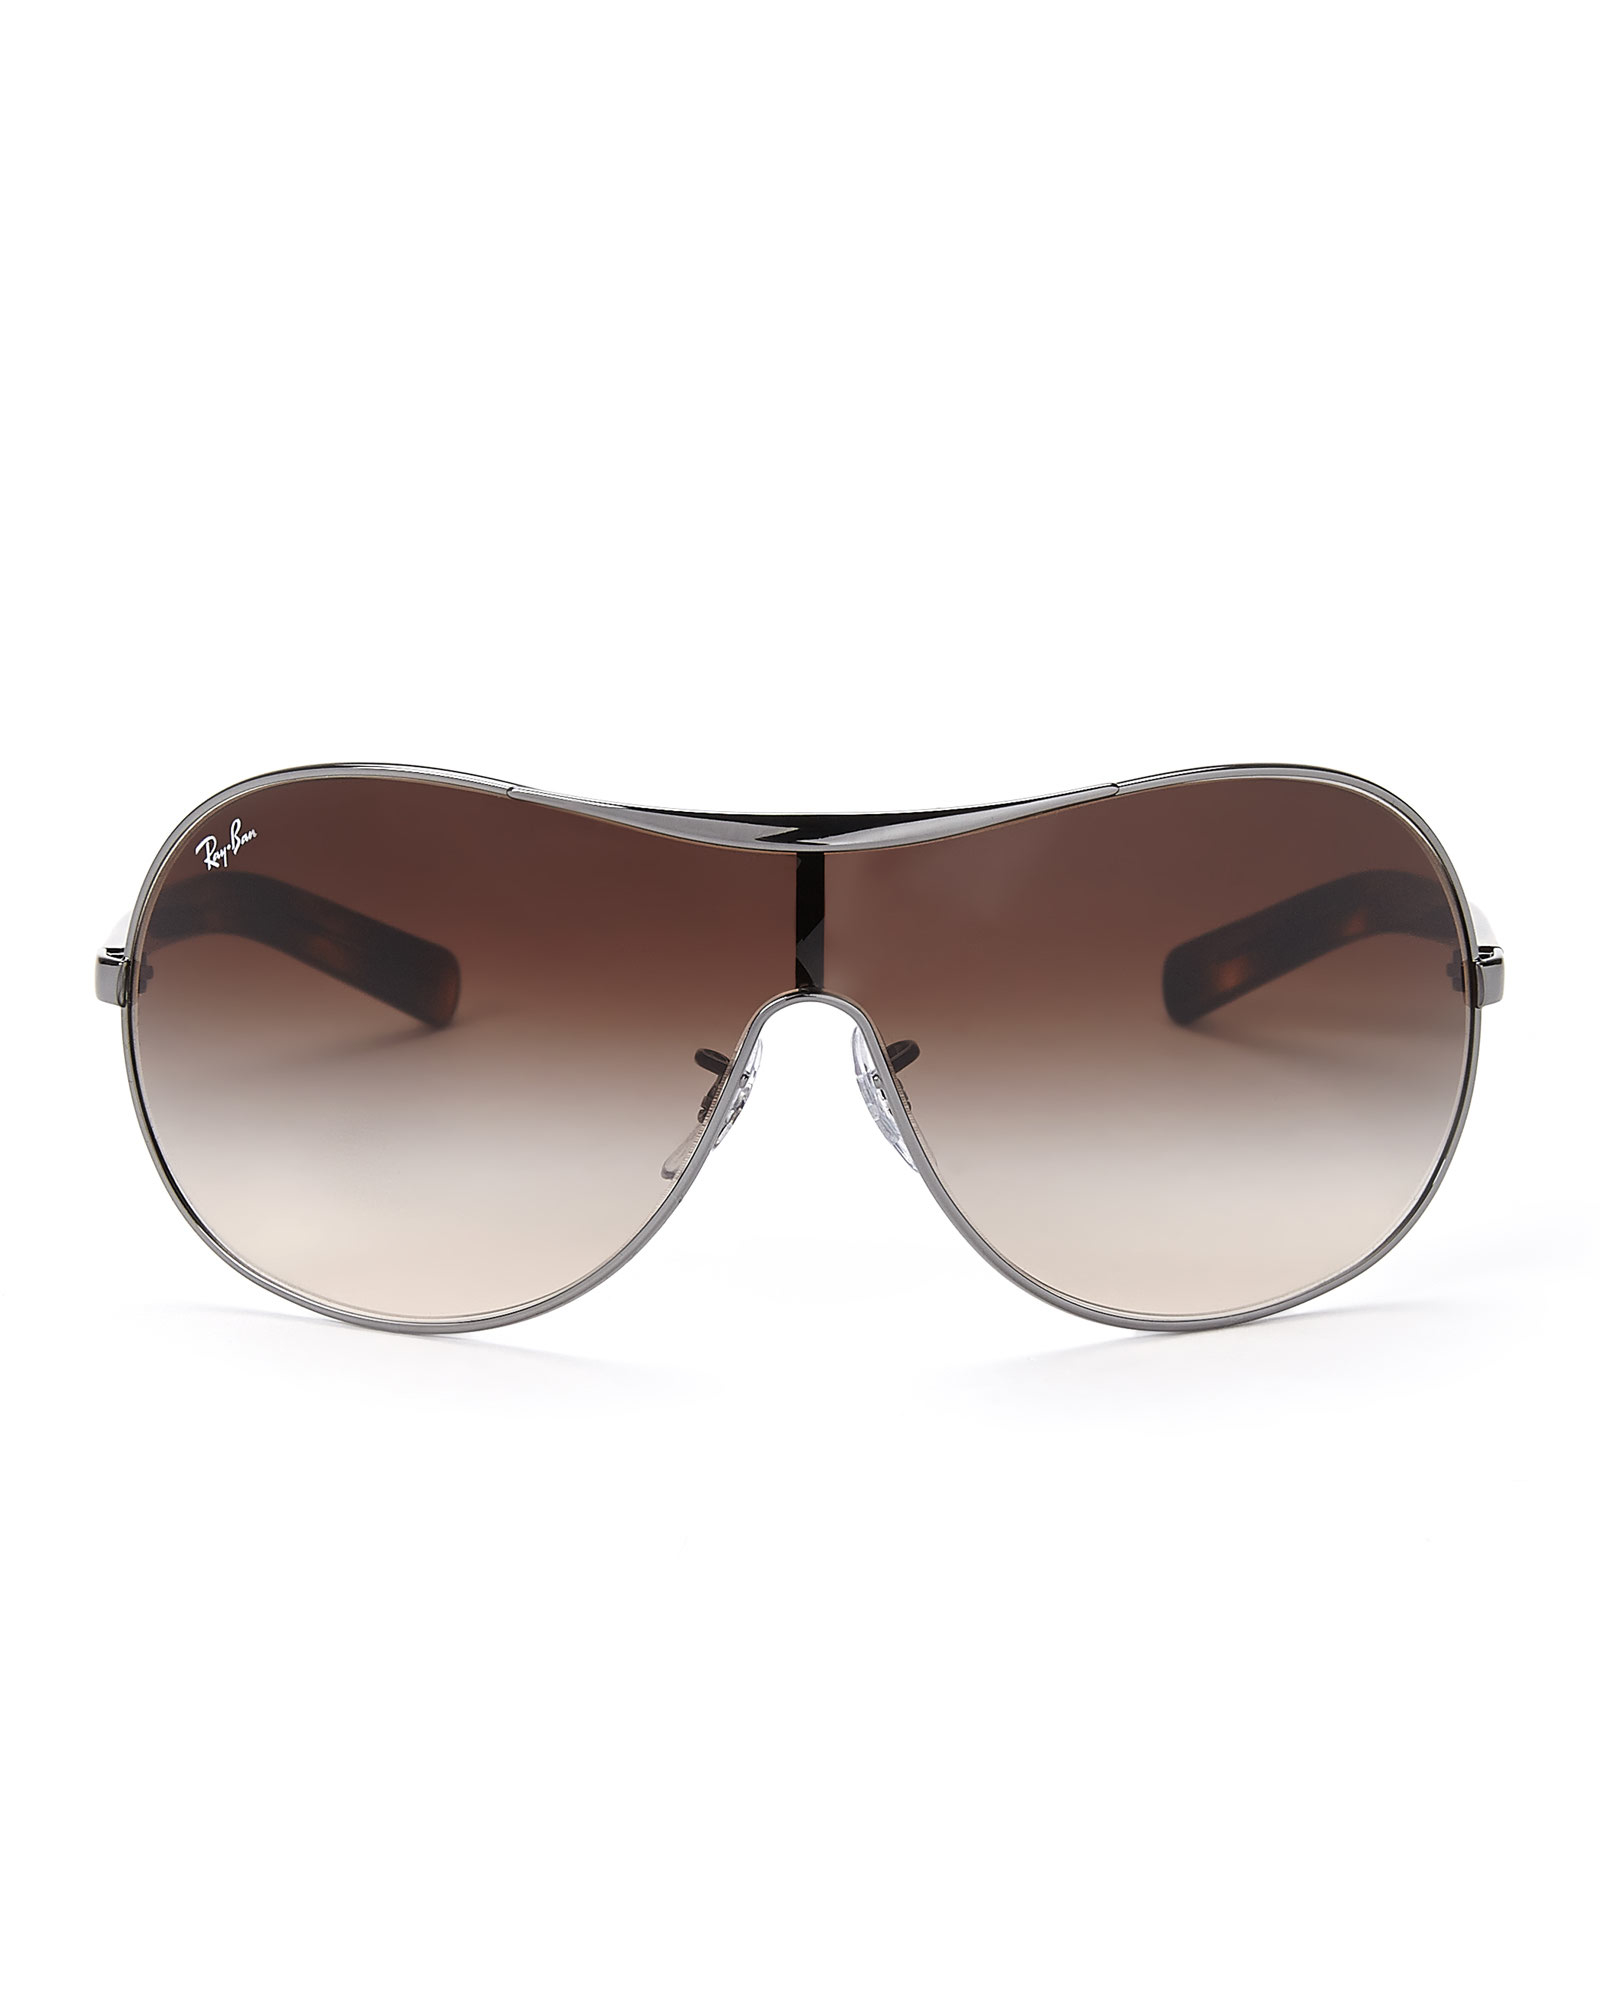 Lyst - Ray-Ban Gunmetal Rb3455 Shield Sunglasses in Brown